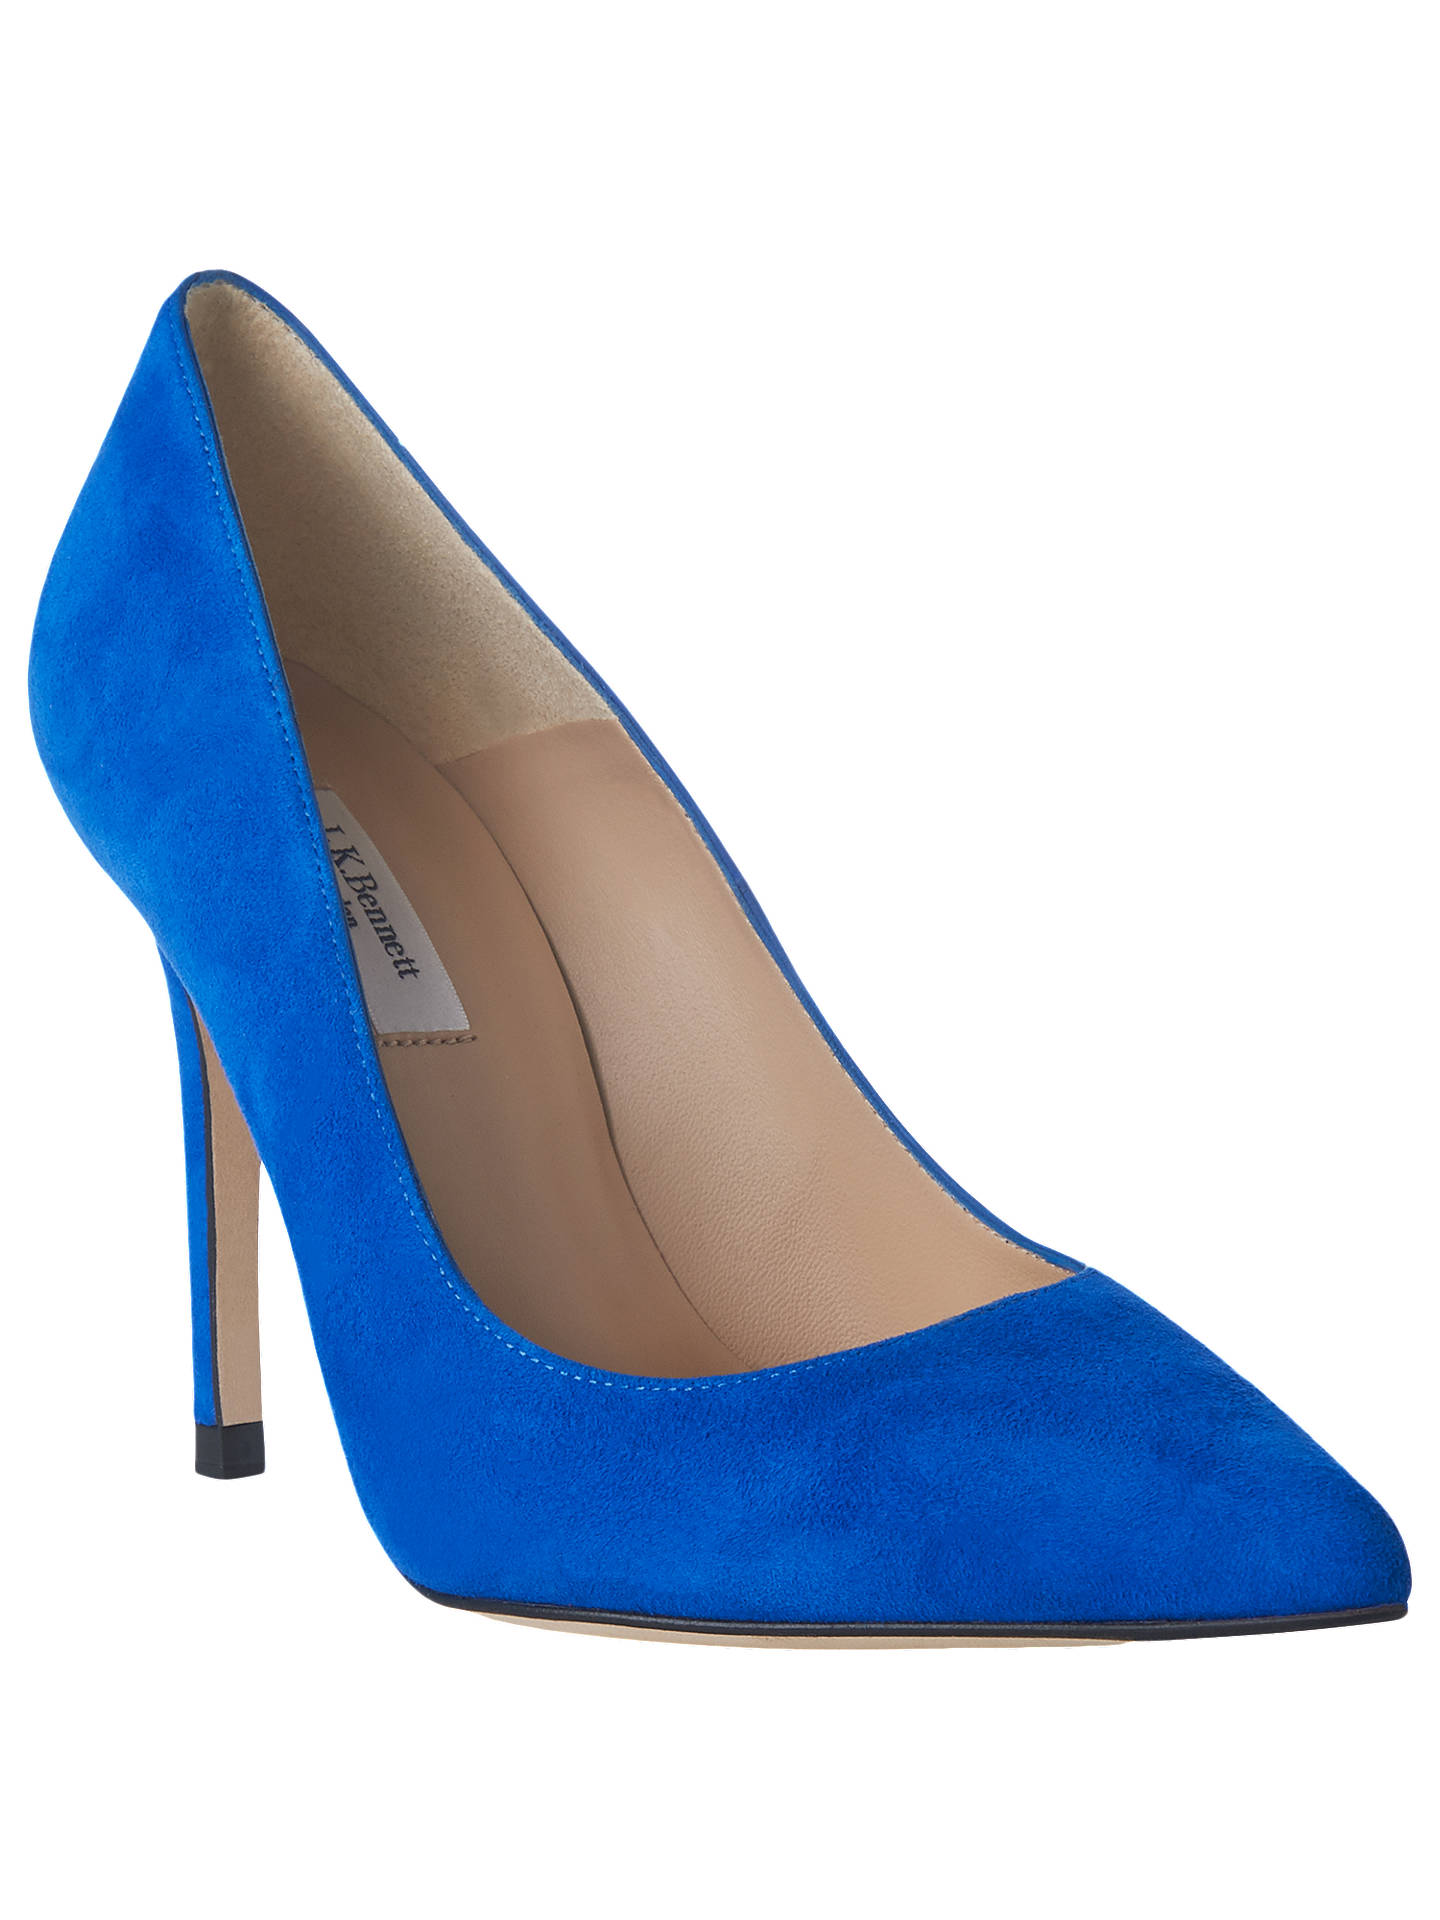 BuyL.K.Bennett Fern Court Shoes, Bright Blue Suede, 3 Online at johnlewis.com